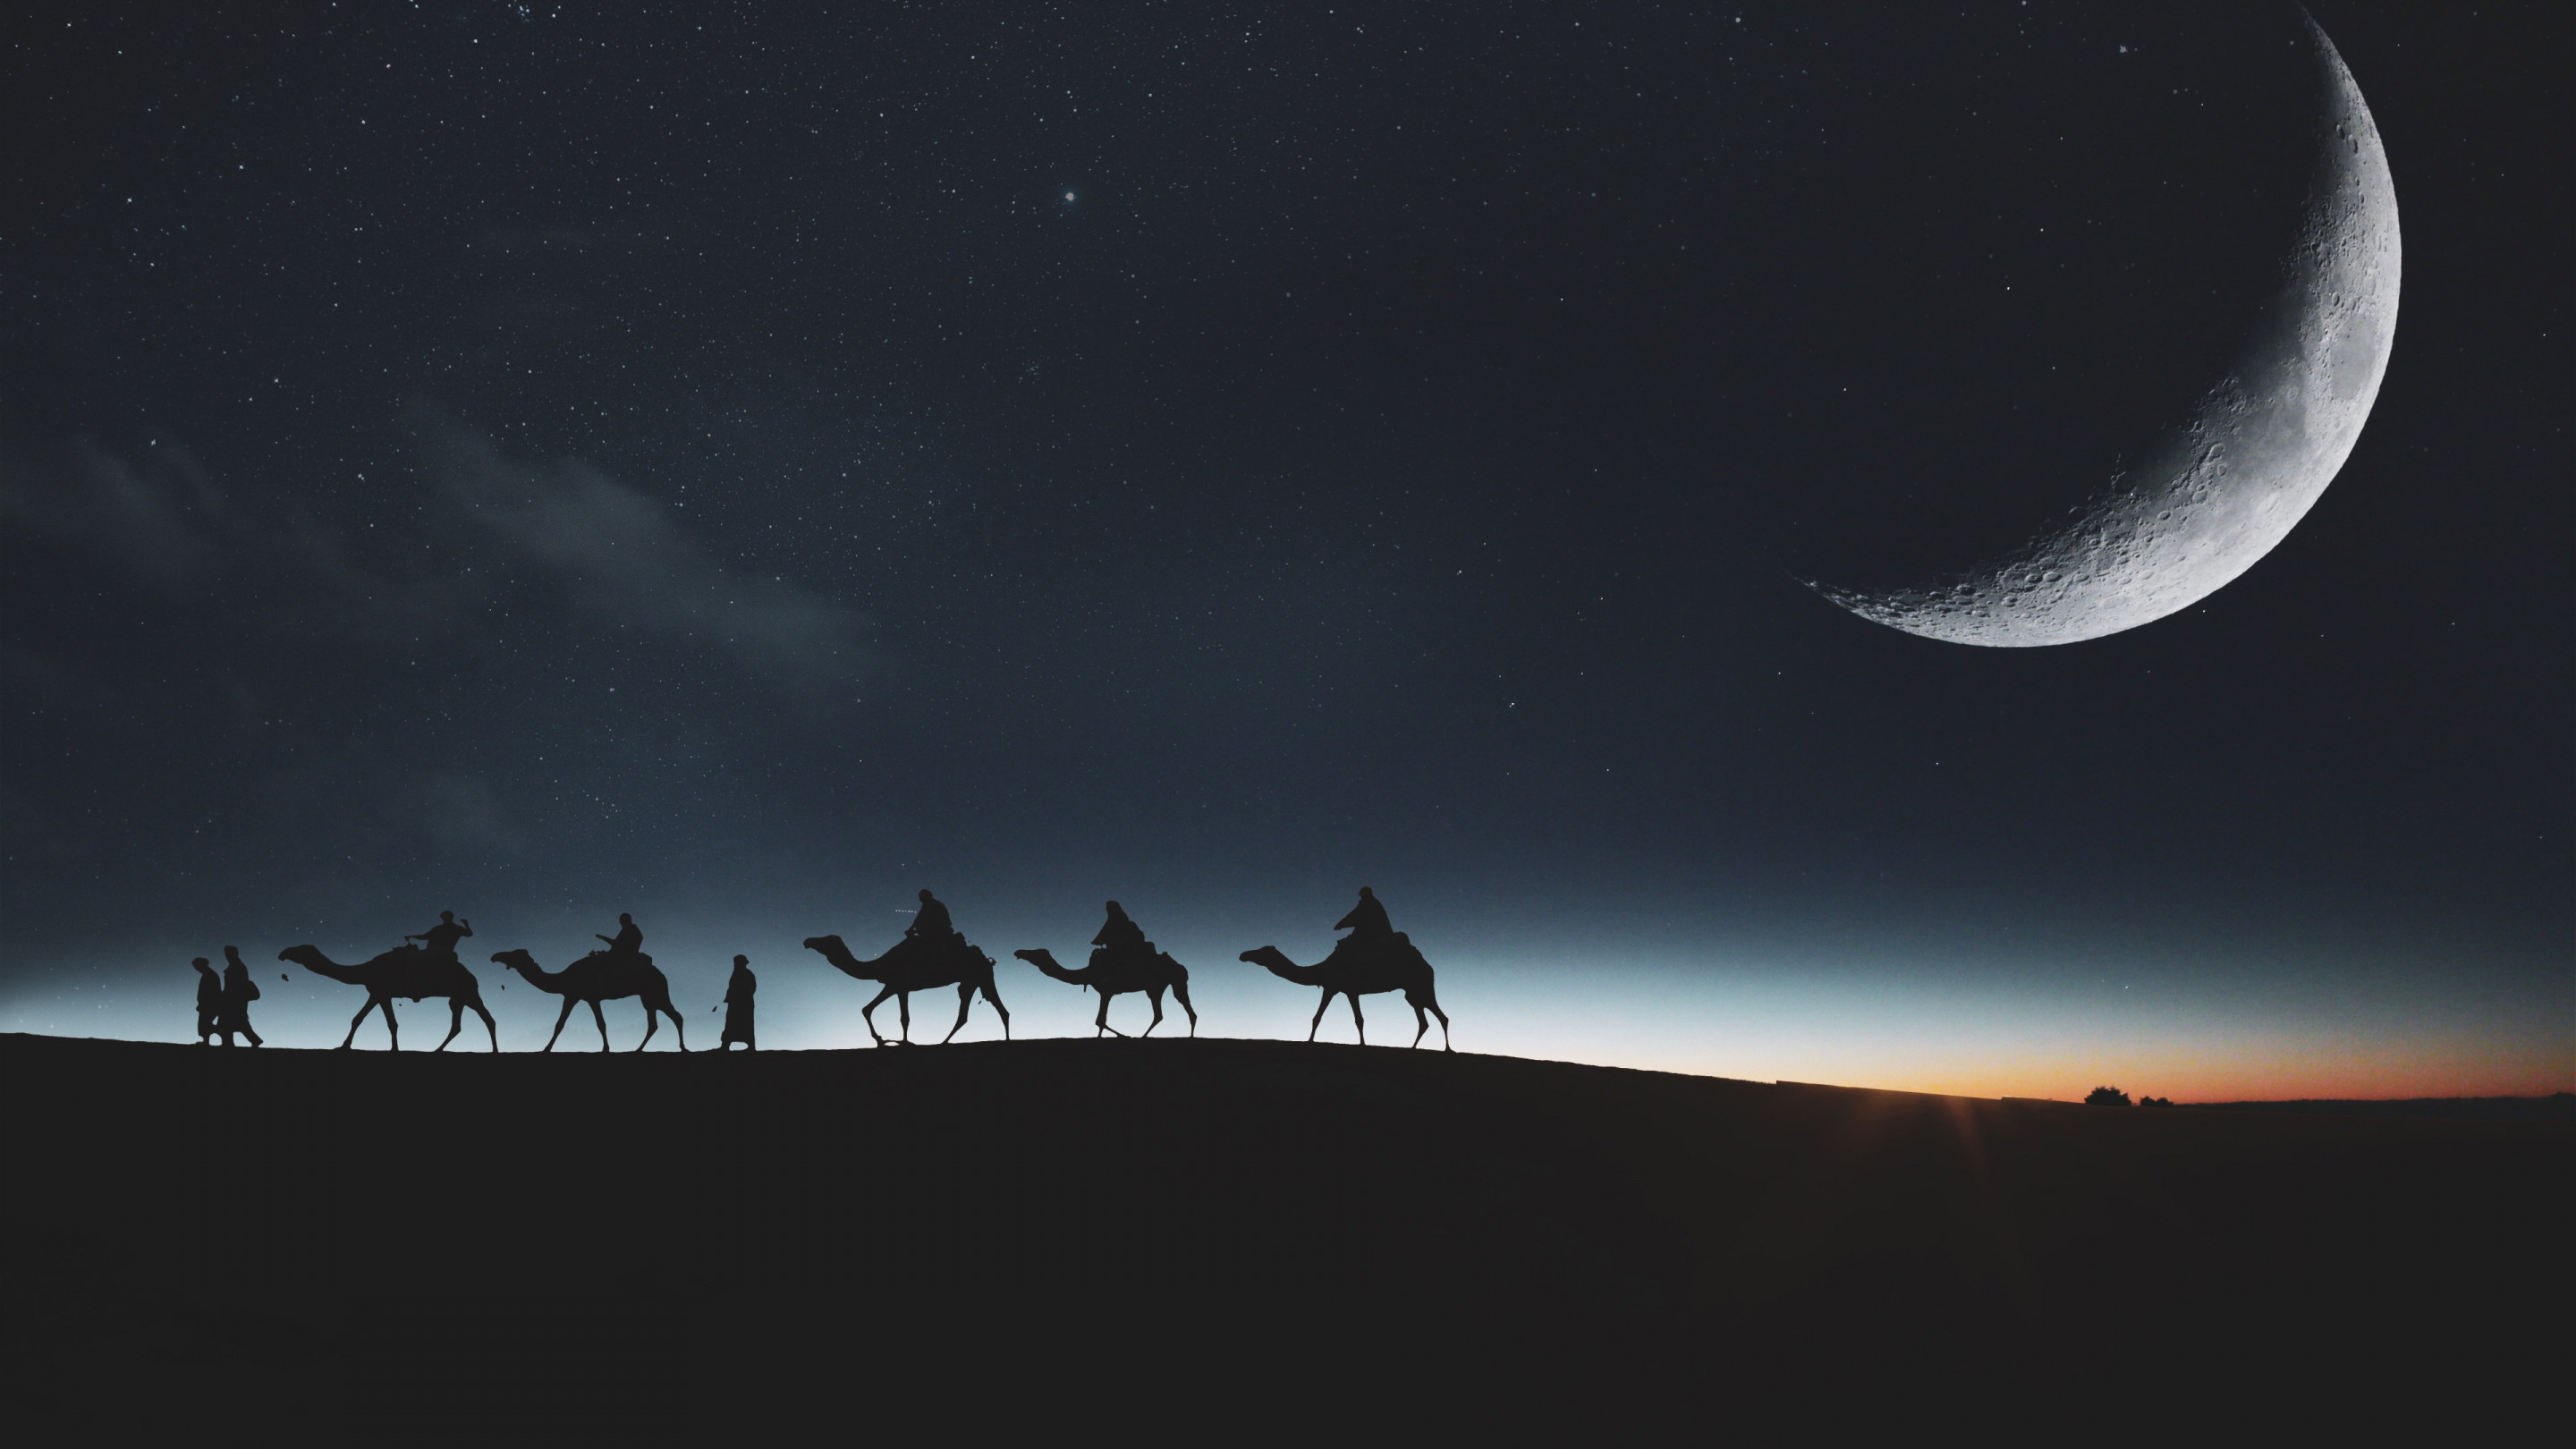 Traveling through desert on camels wallpaper 2880x1620